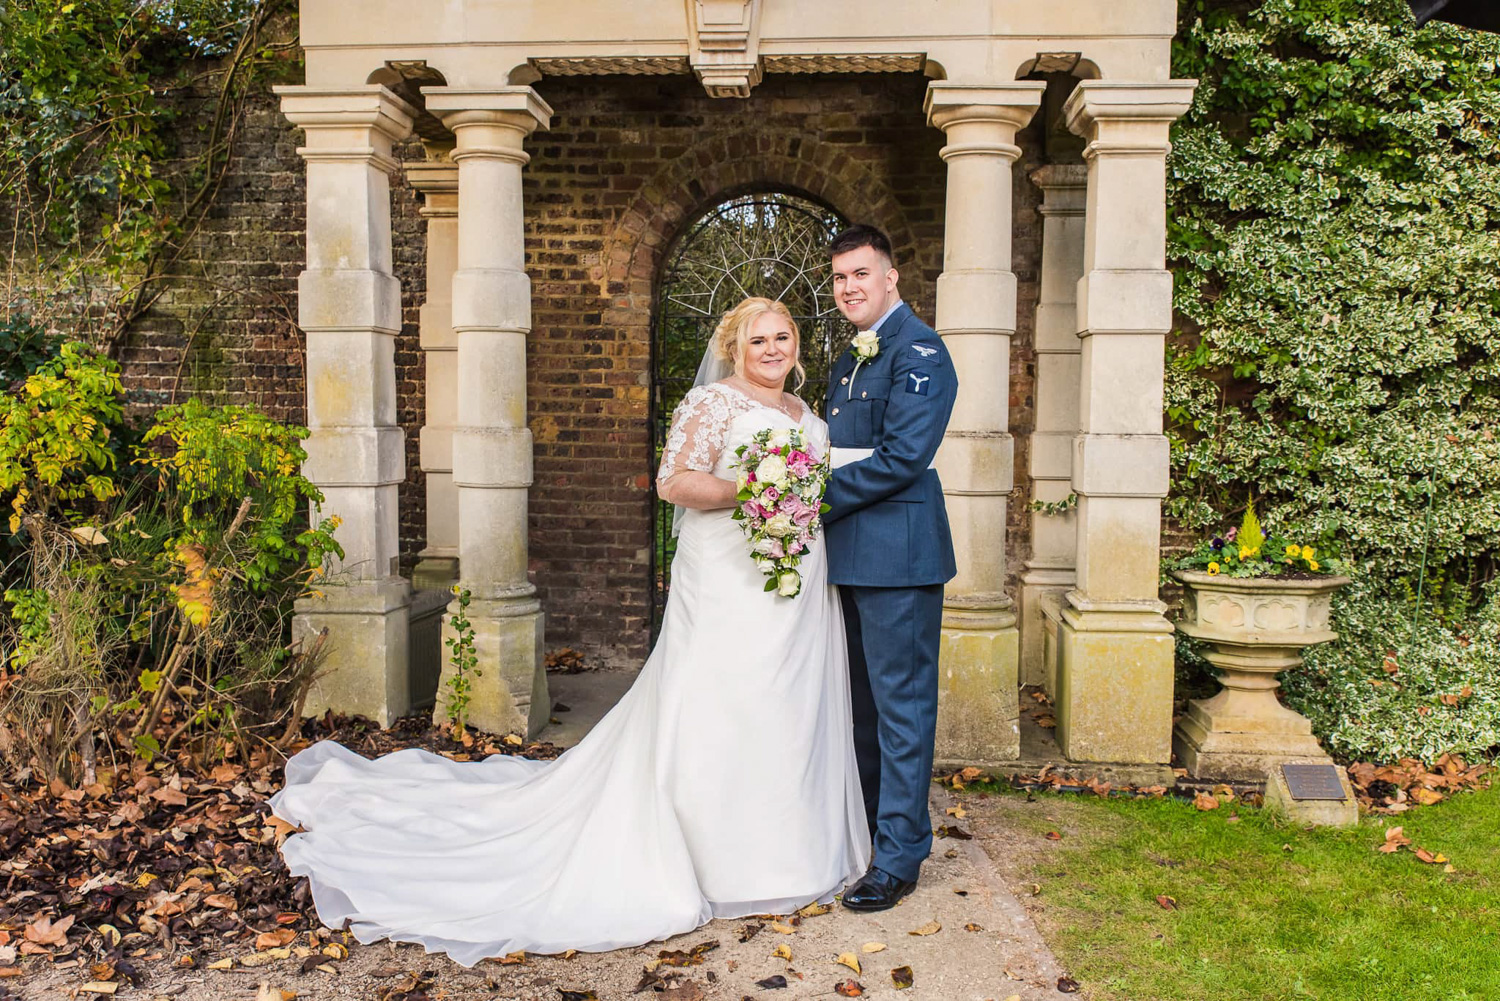 RAF-Bride-and-groom.jpg